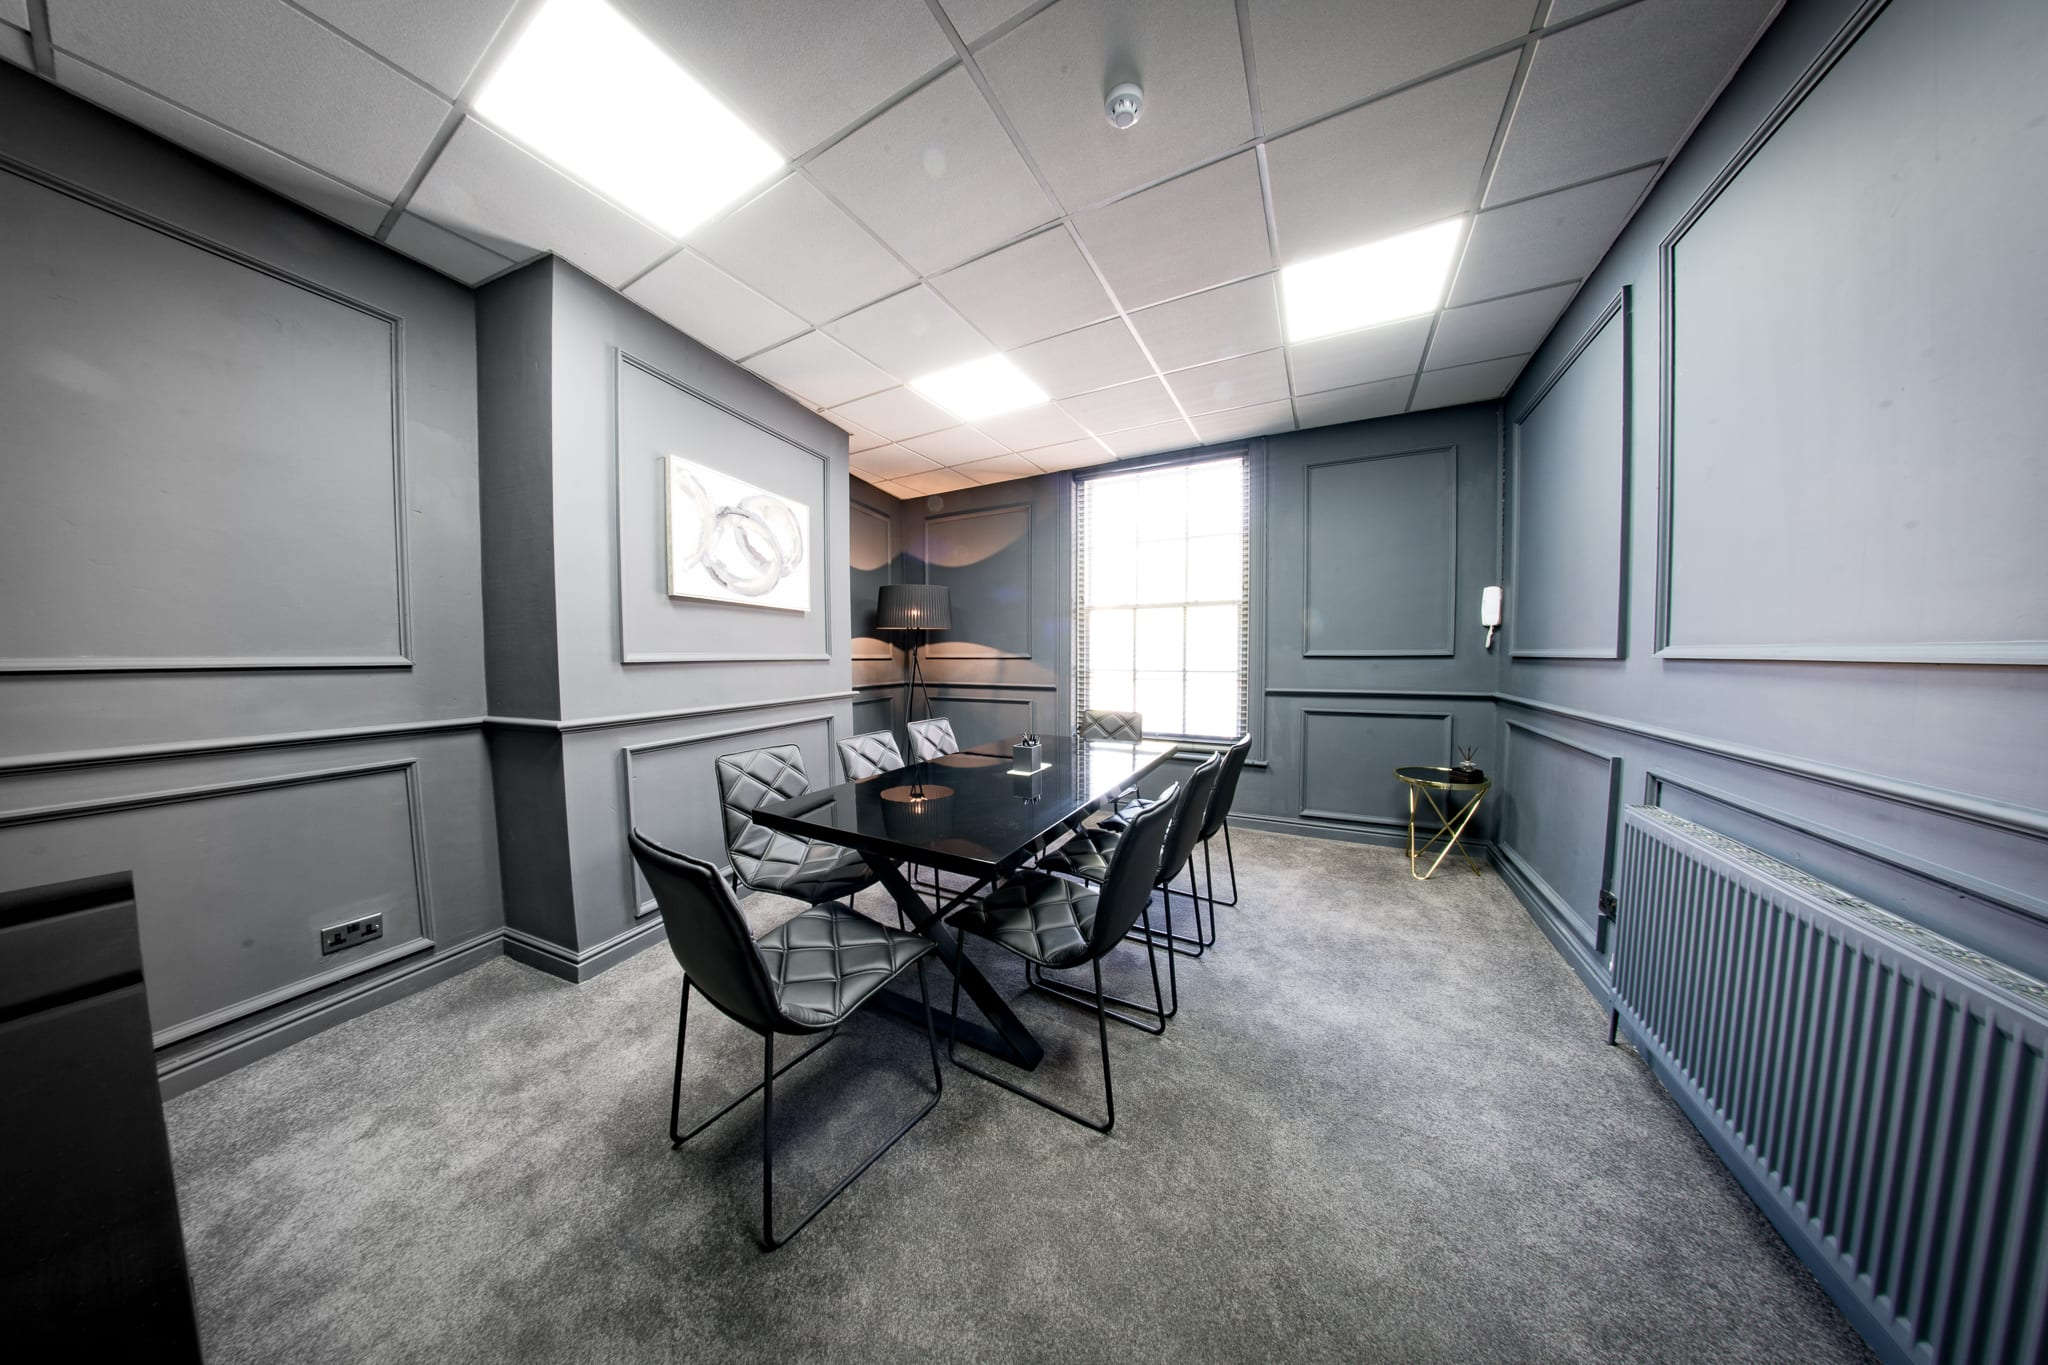 Manchester Office Space - Hliton House Room 5